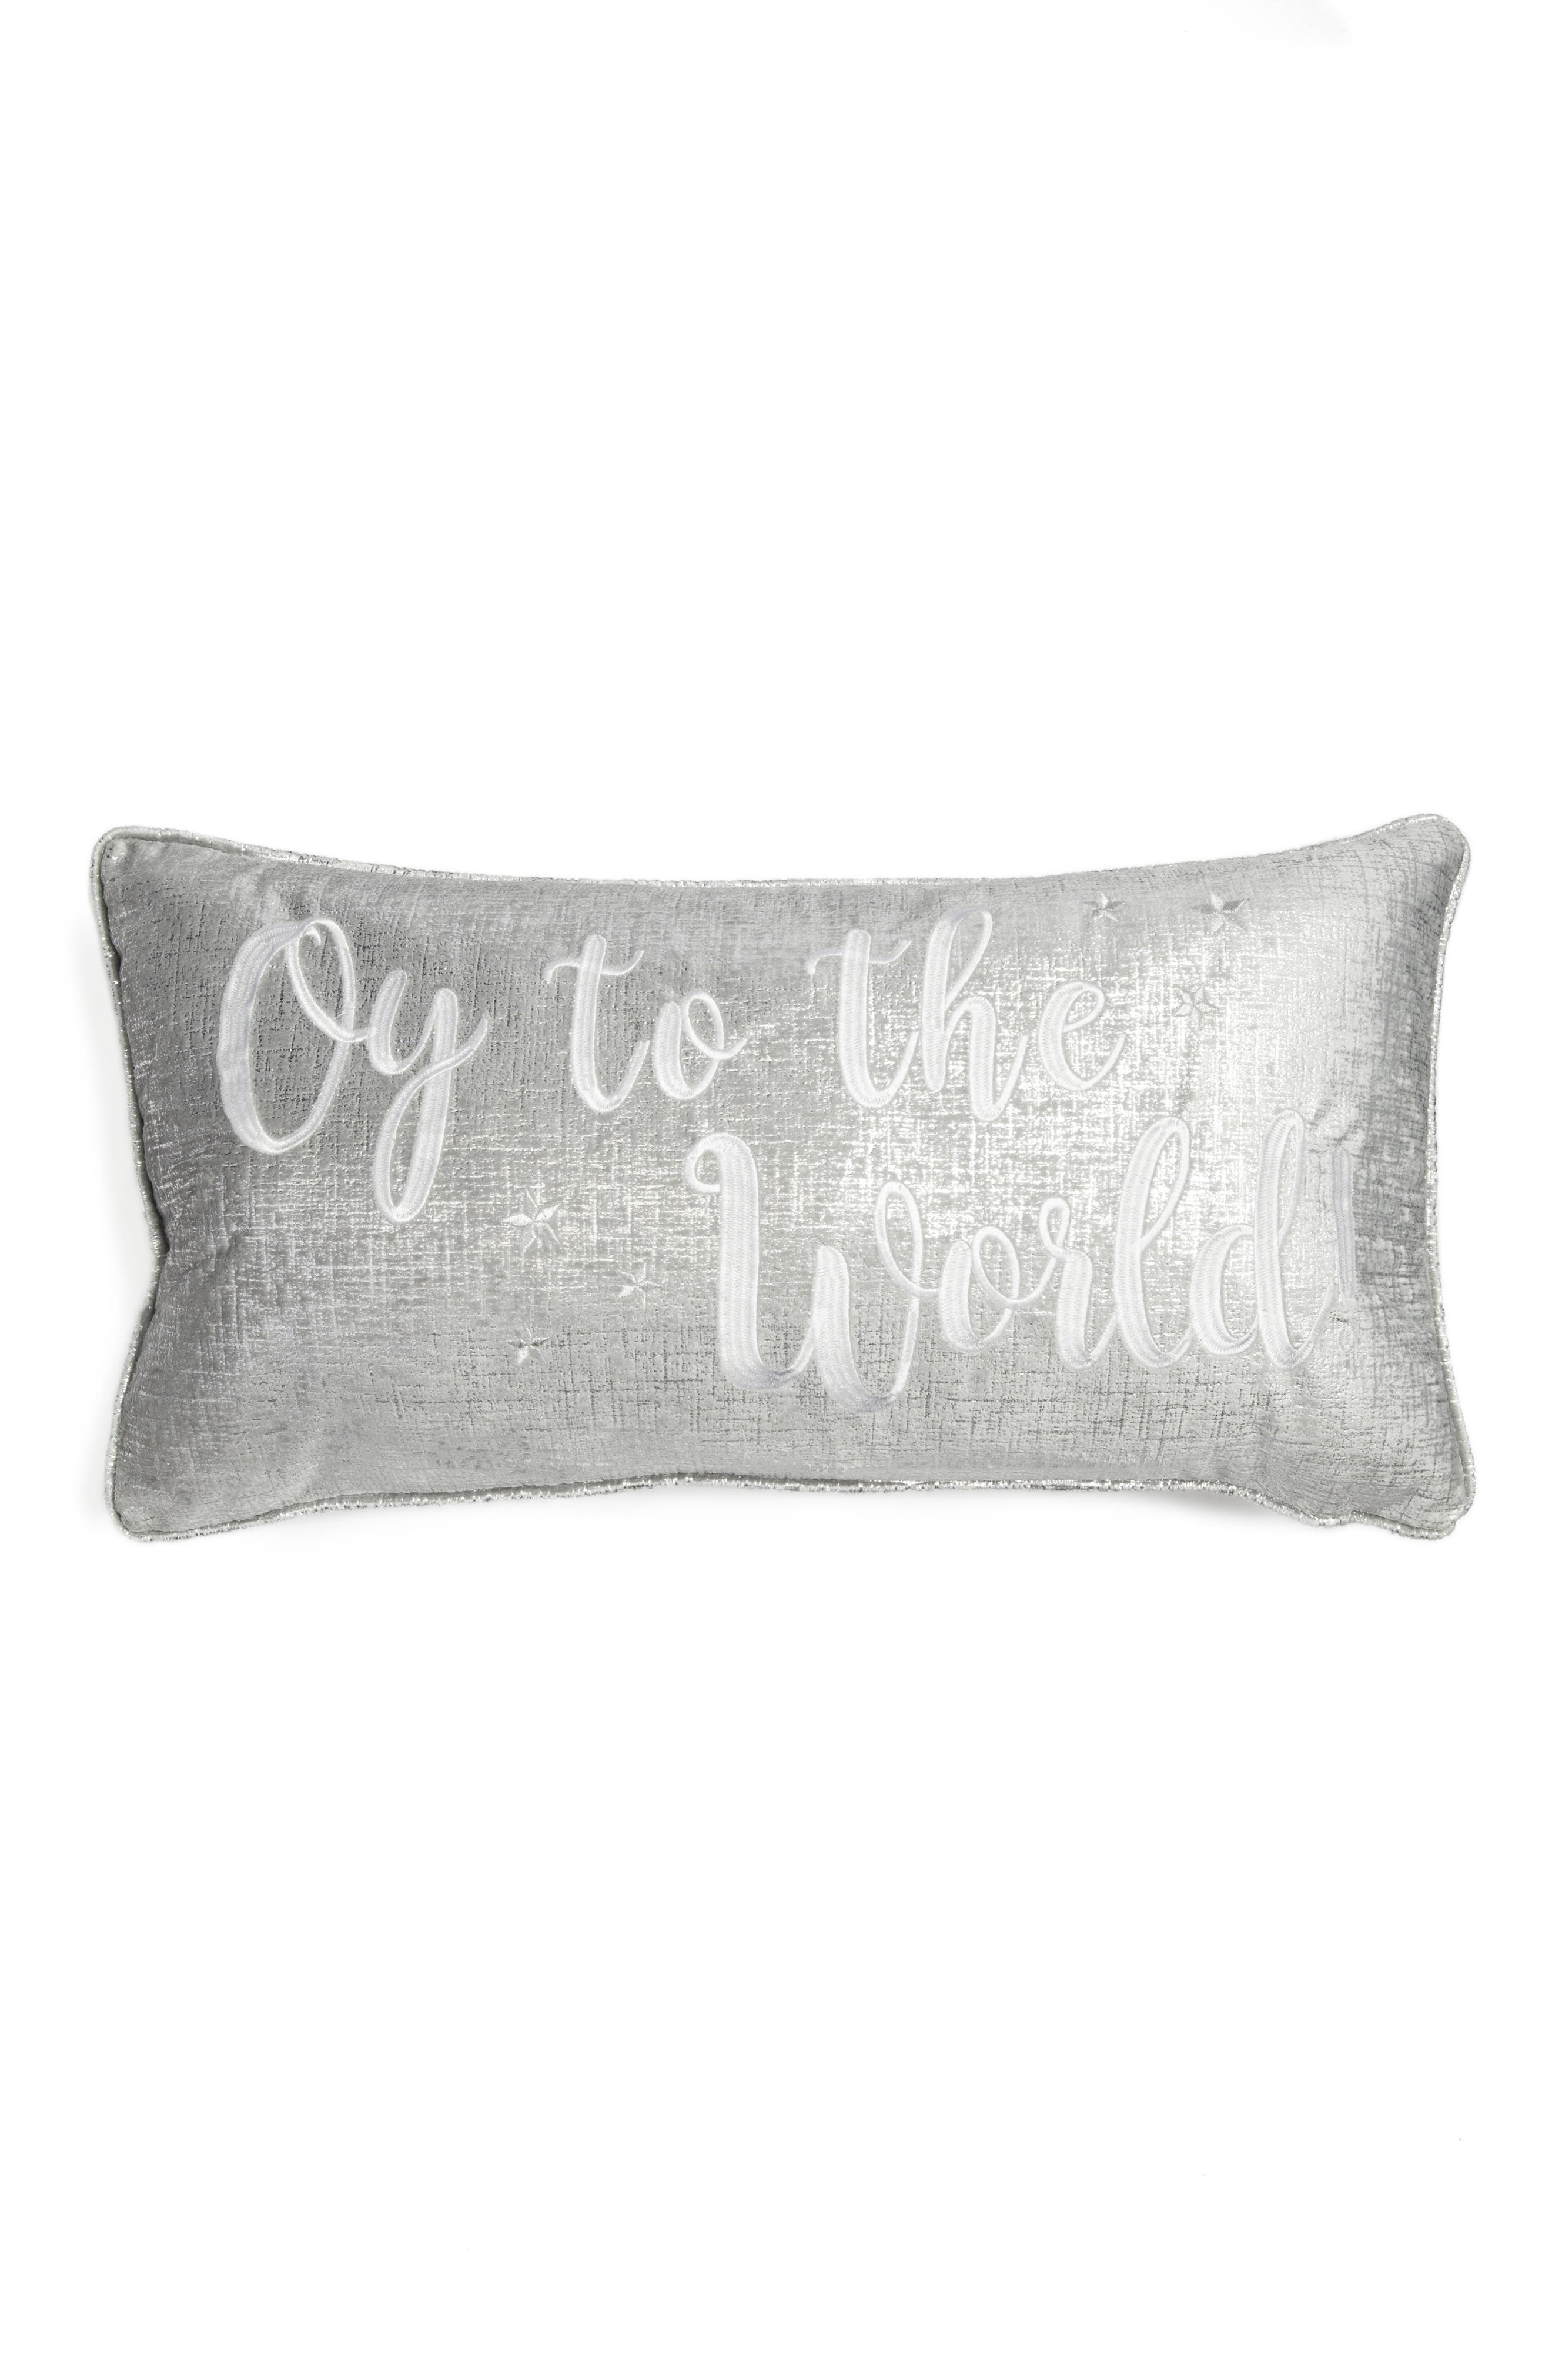 Oy to the World Accent Pillow,                         Main,                         color, 040